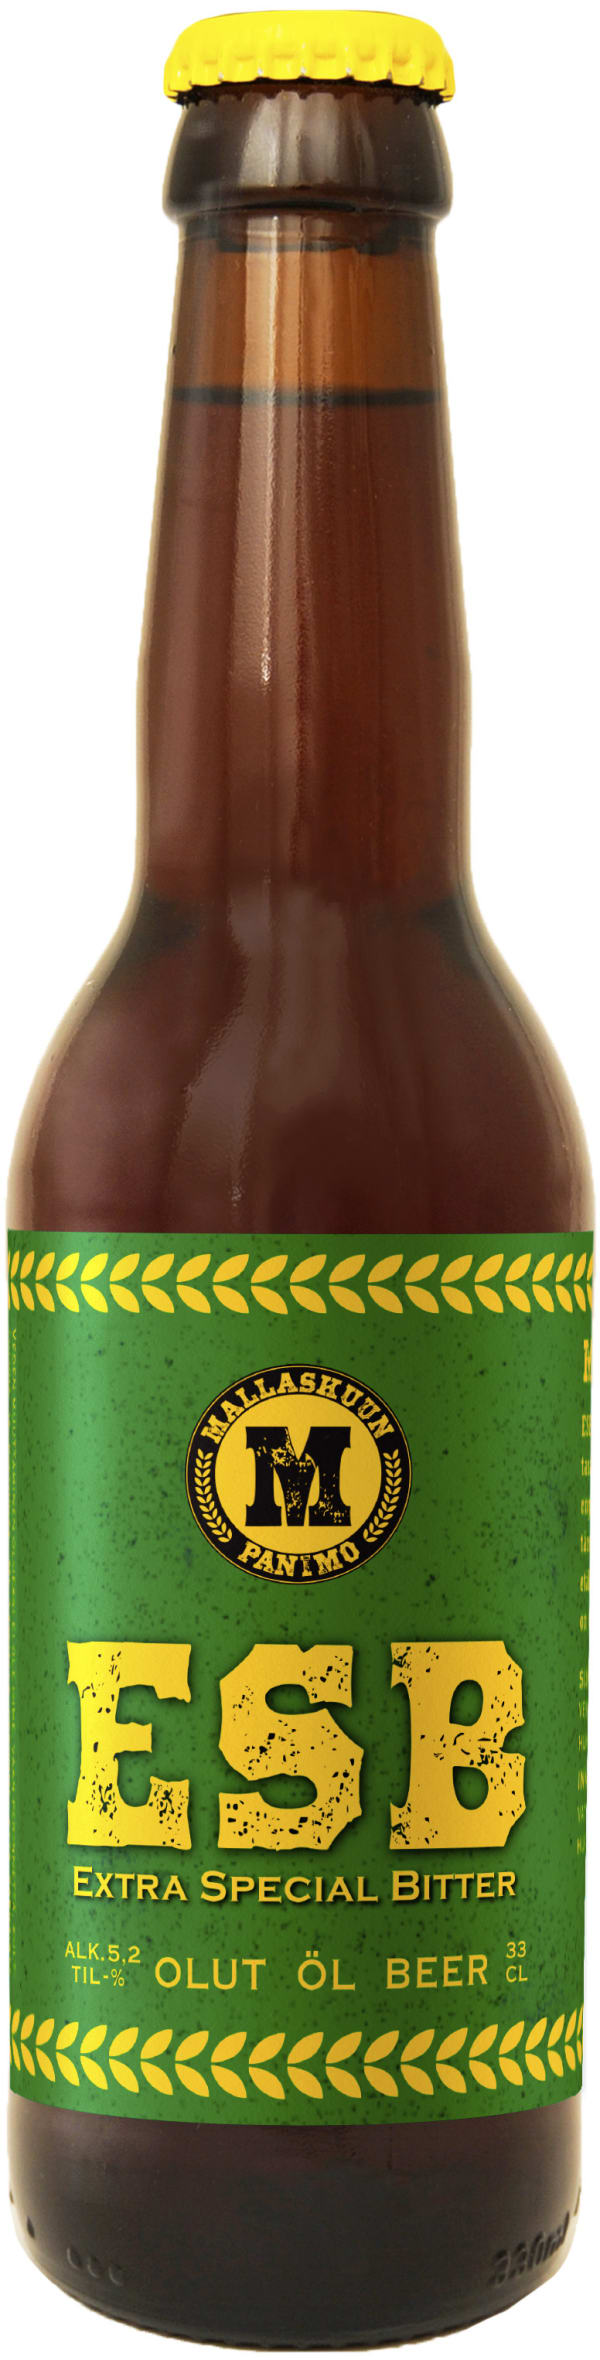 Mallaskuun Top Hat Ale